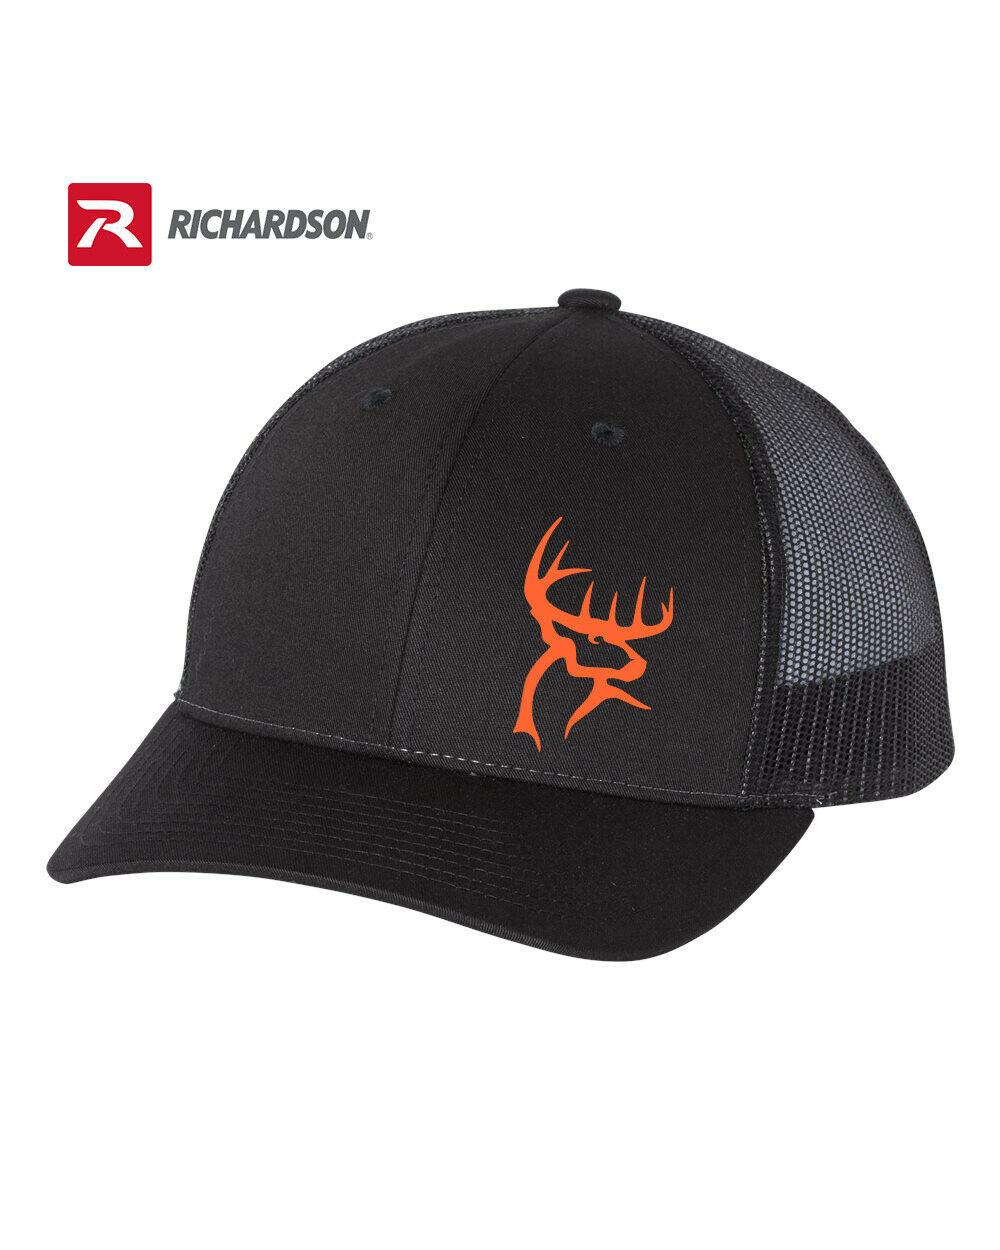 Primary image for DEER HUNTING HUNTER RICHARDSON HAT MANY COLORS AVAIL. *FREE SHIPPING in BOX*